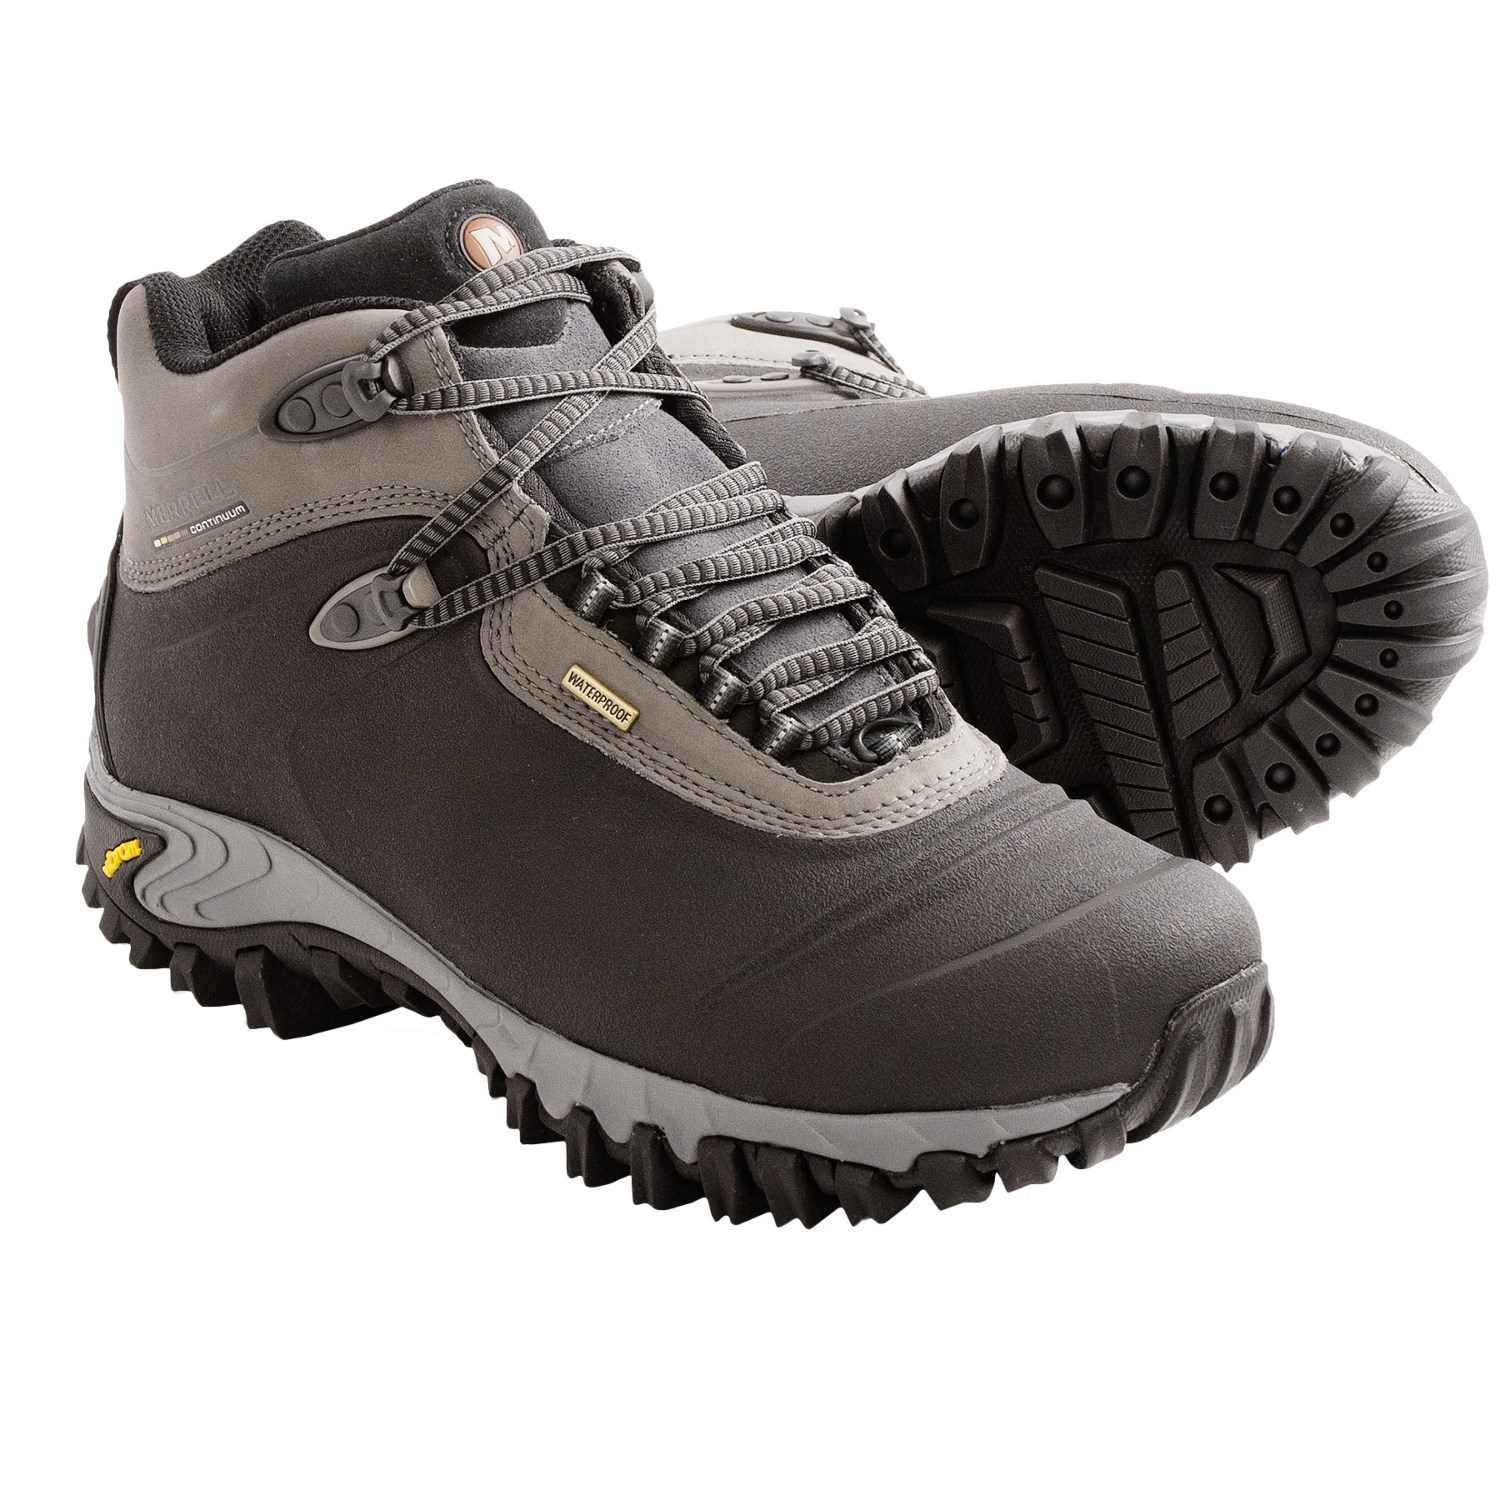 Merrell Bergenz Waterproof Winter Boots - Men's | Homewood ...